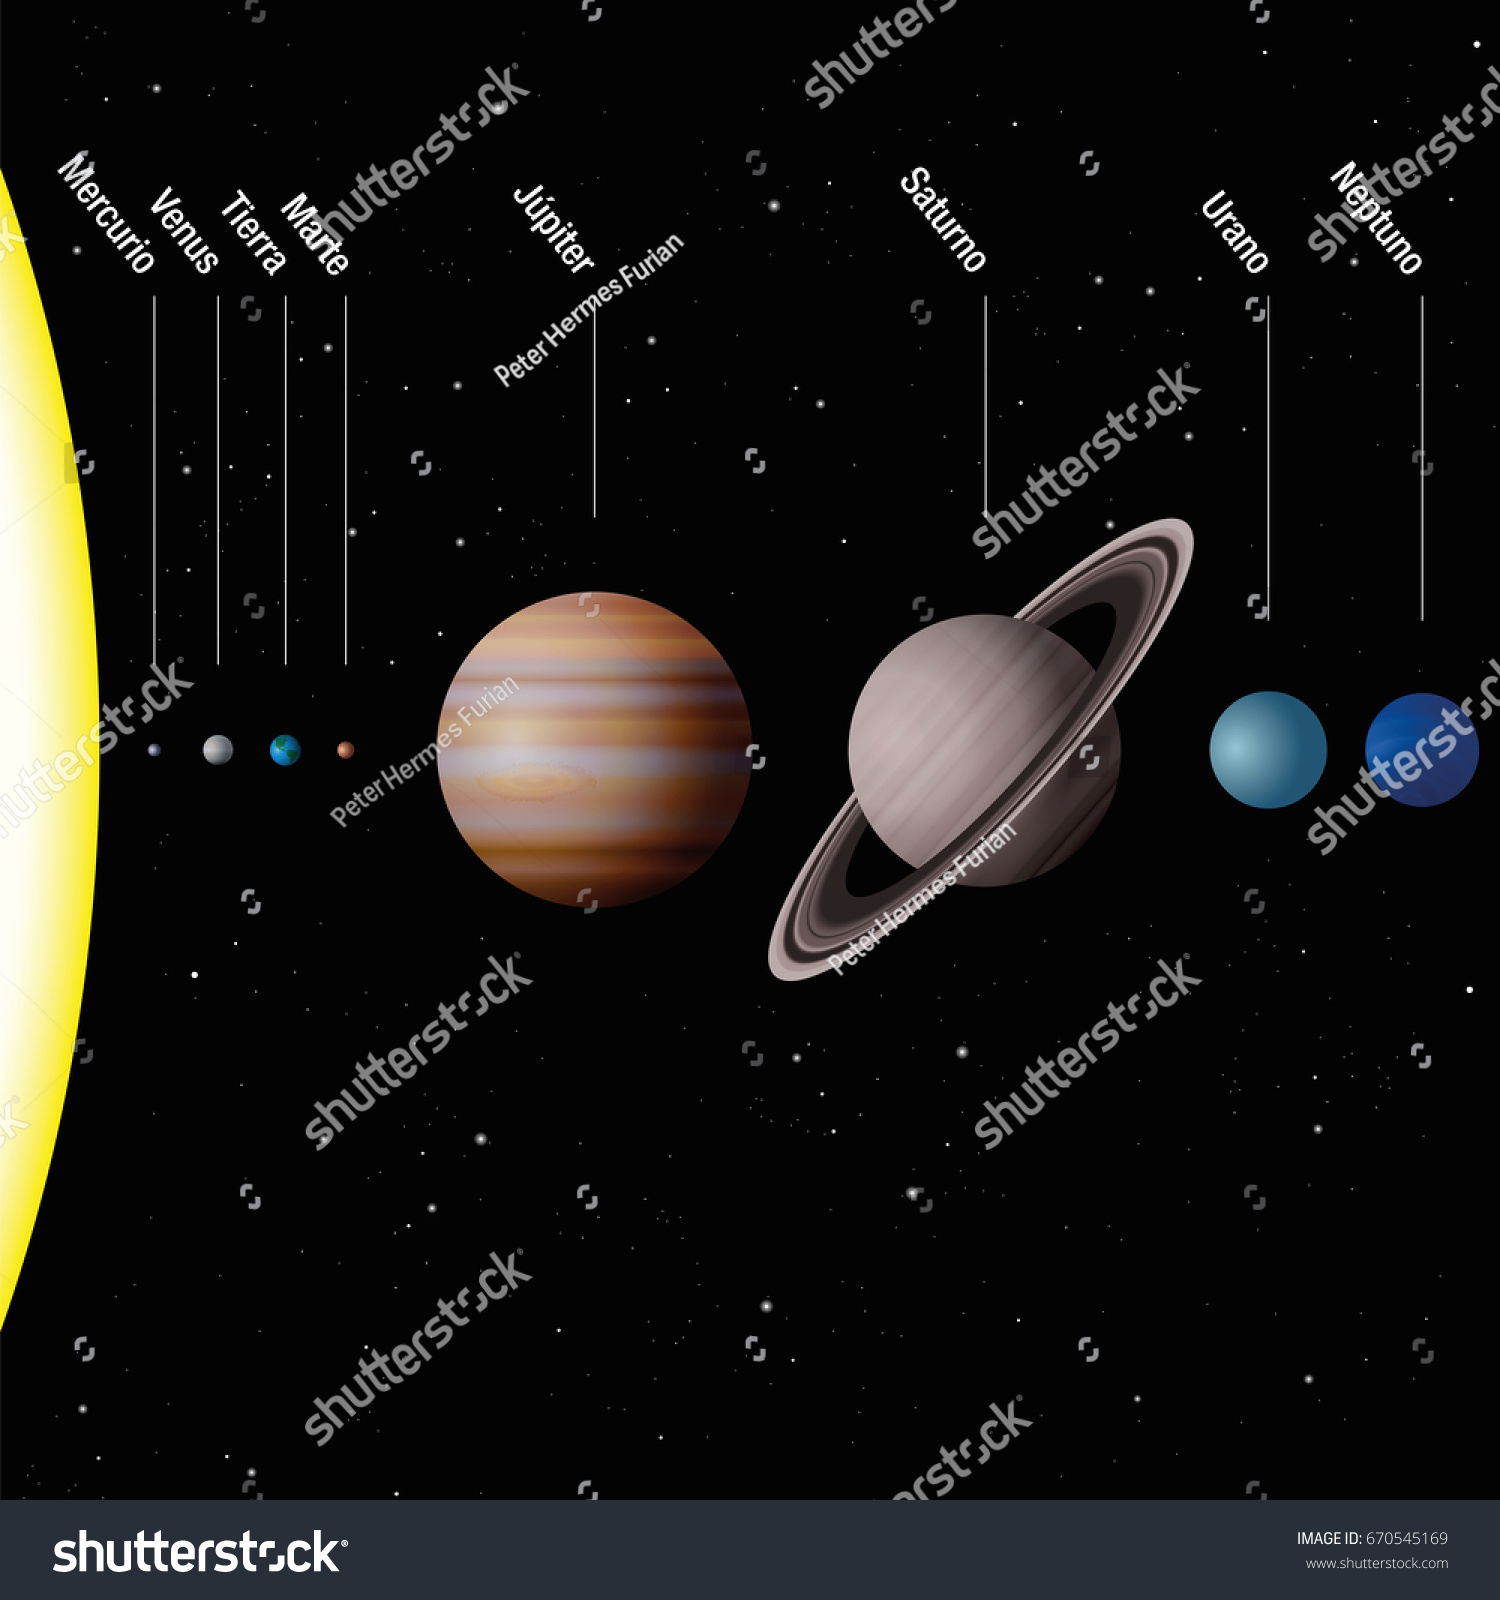 Planets Our Solar System Spanish Labeling Stock Vector ...